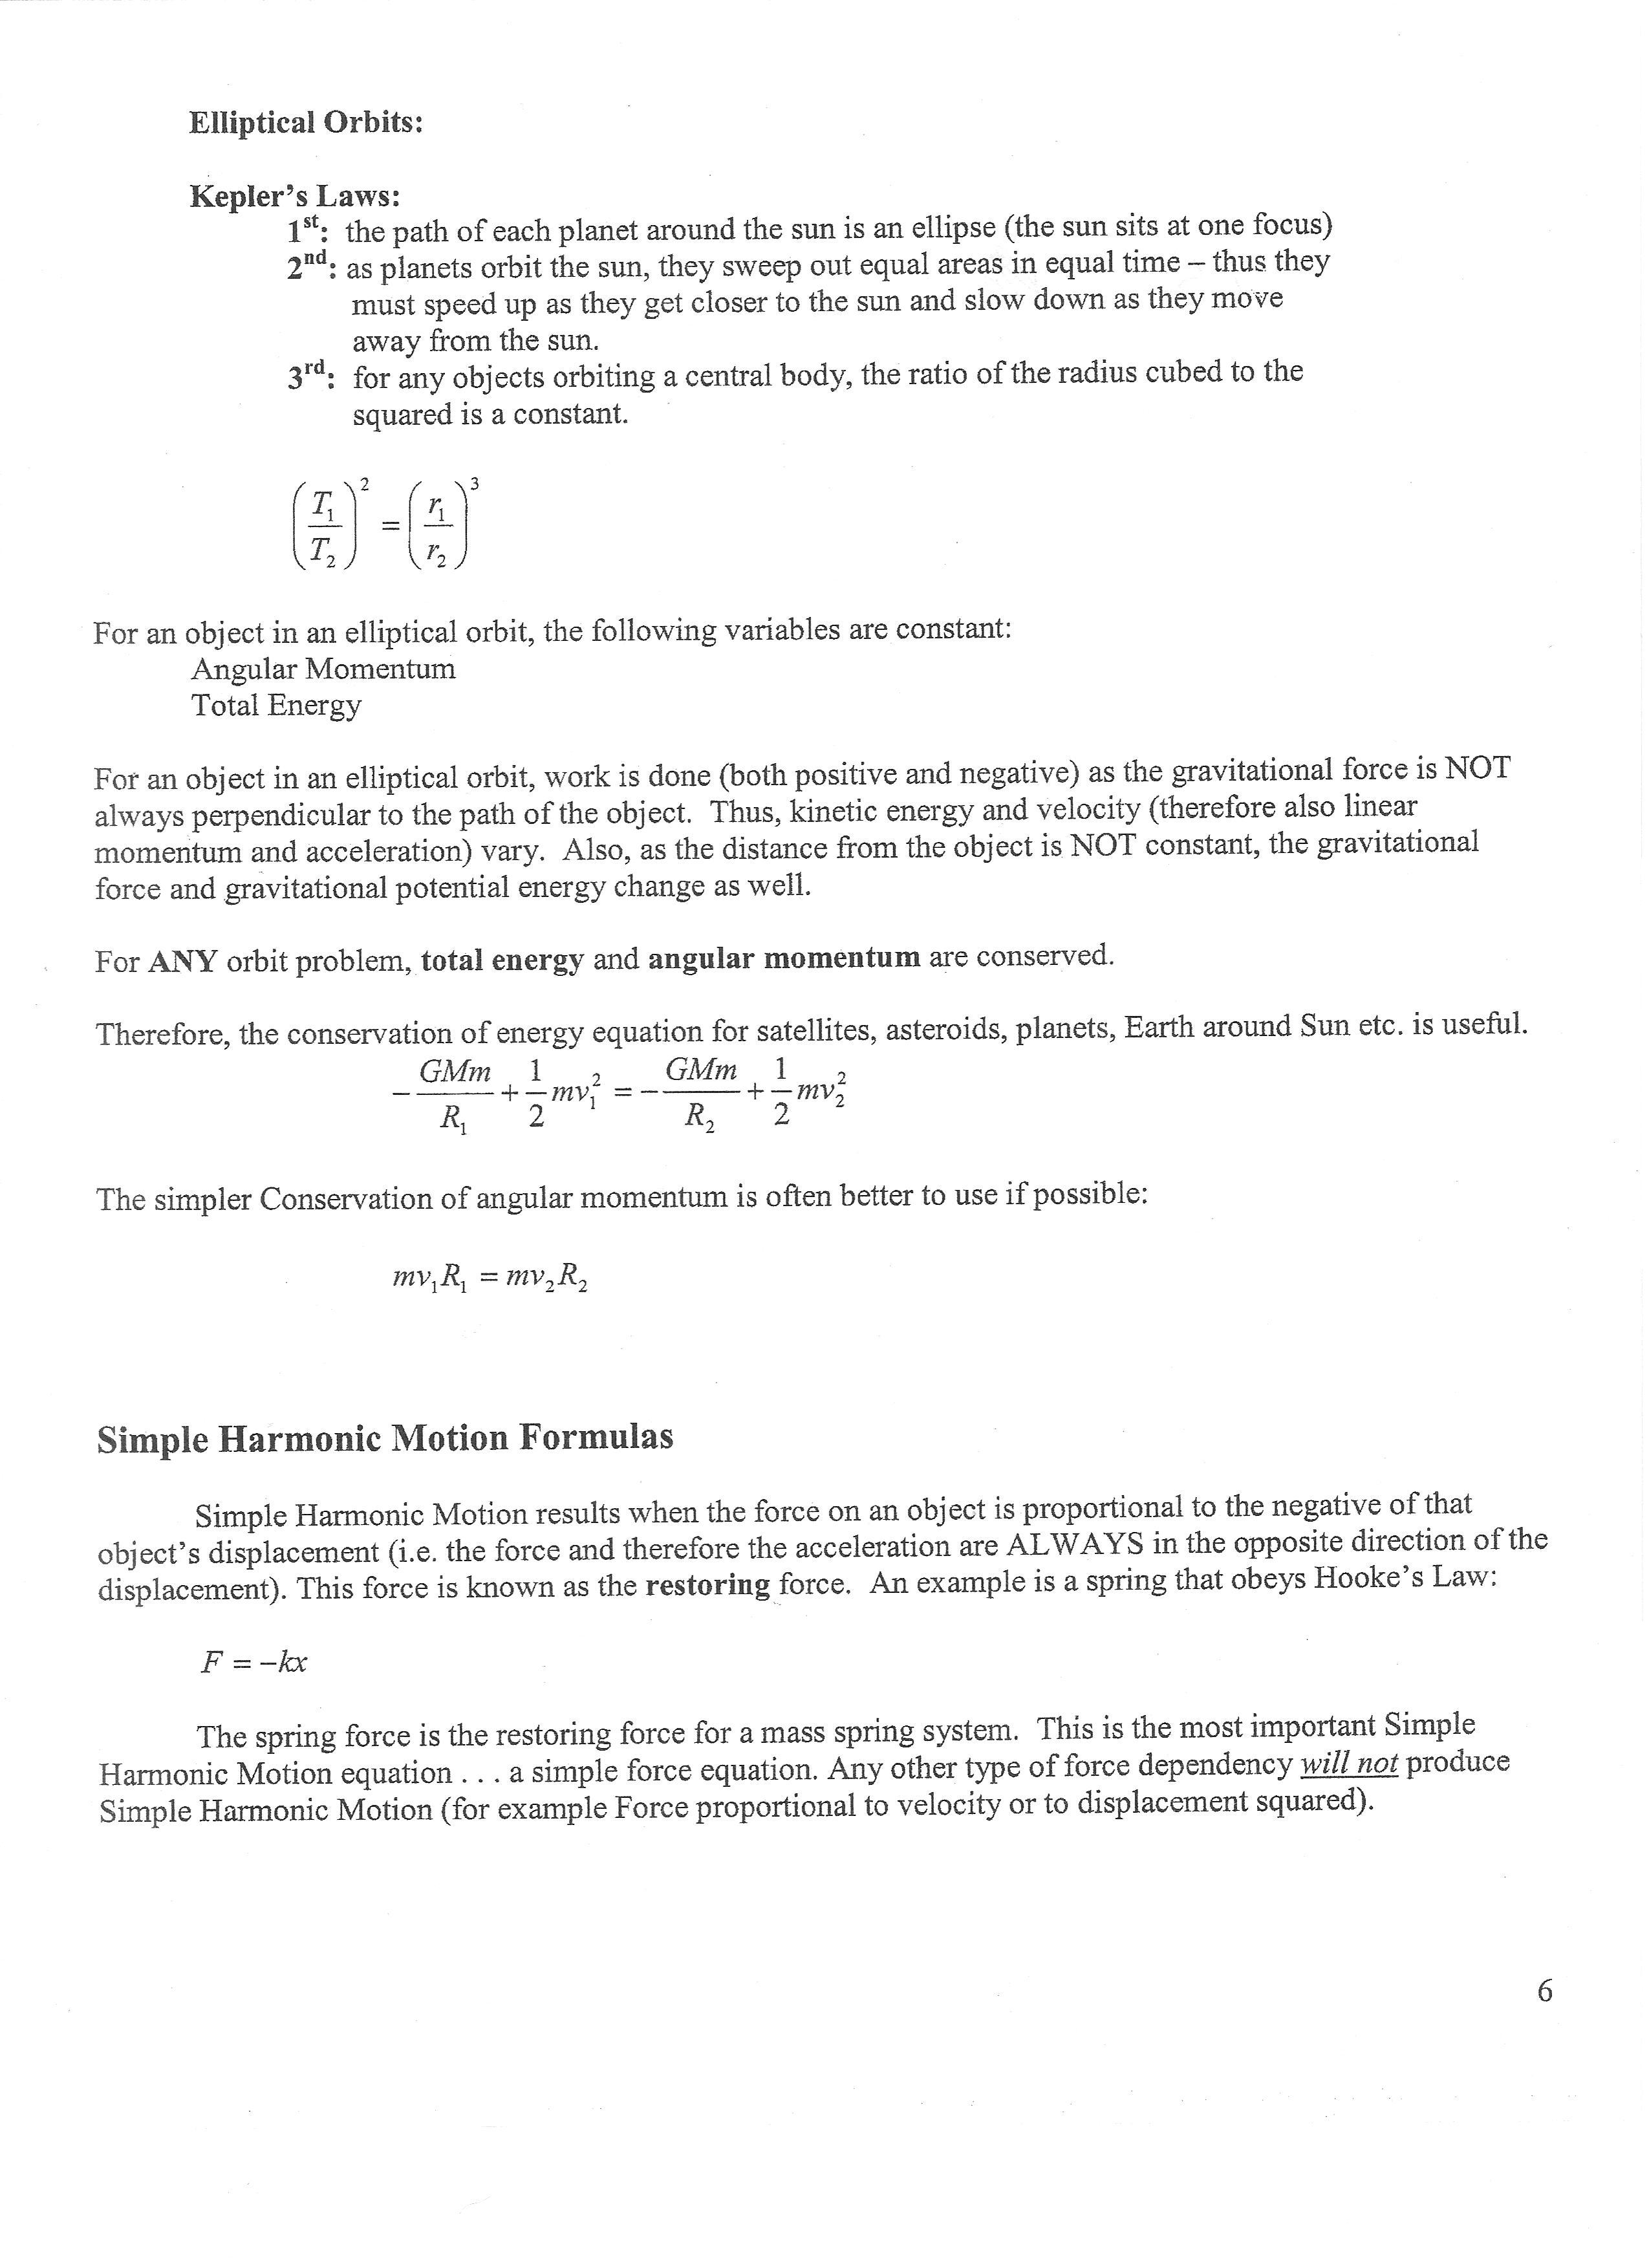 Advanced Placement Physics Equations